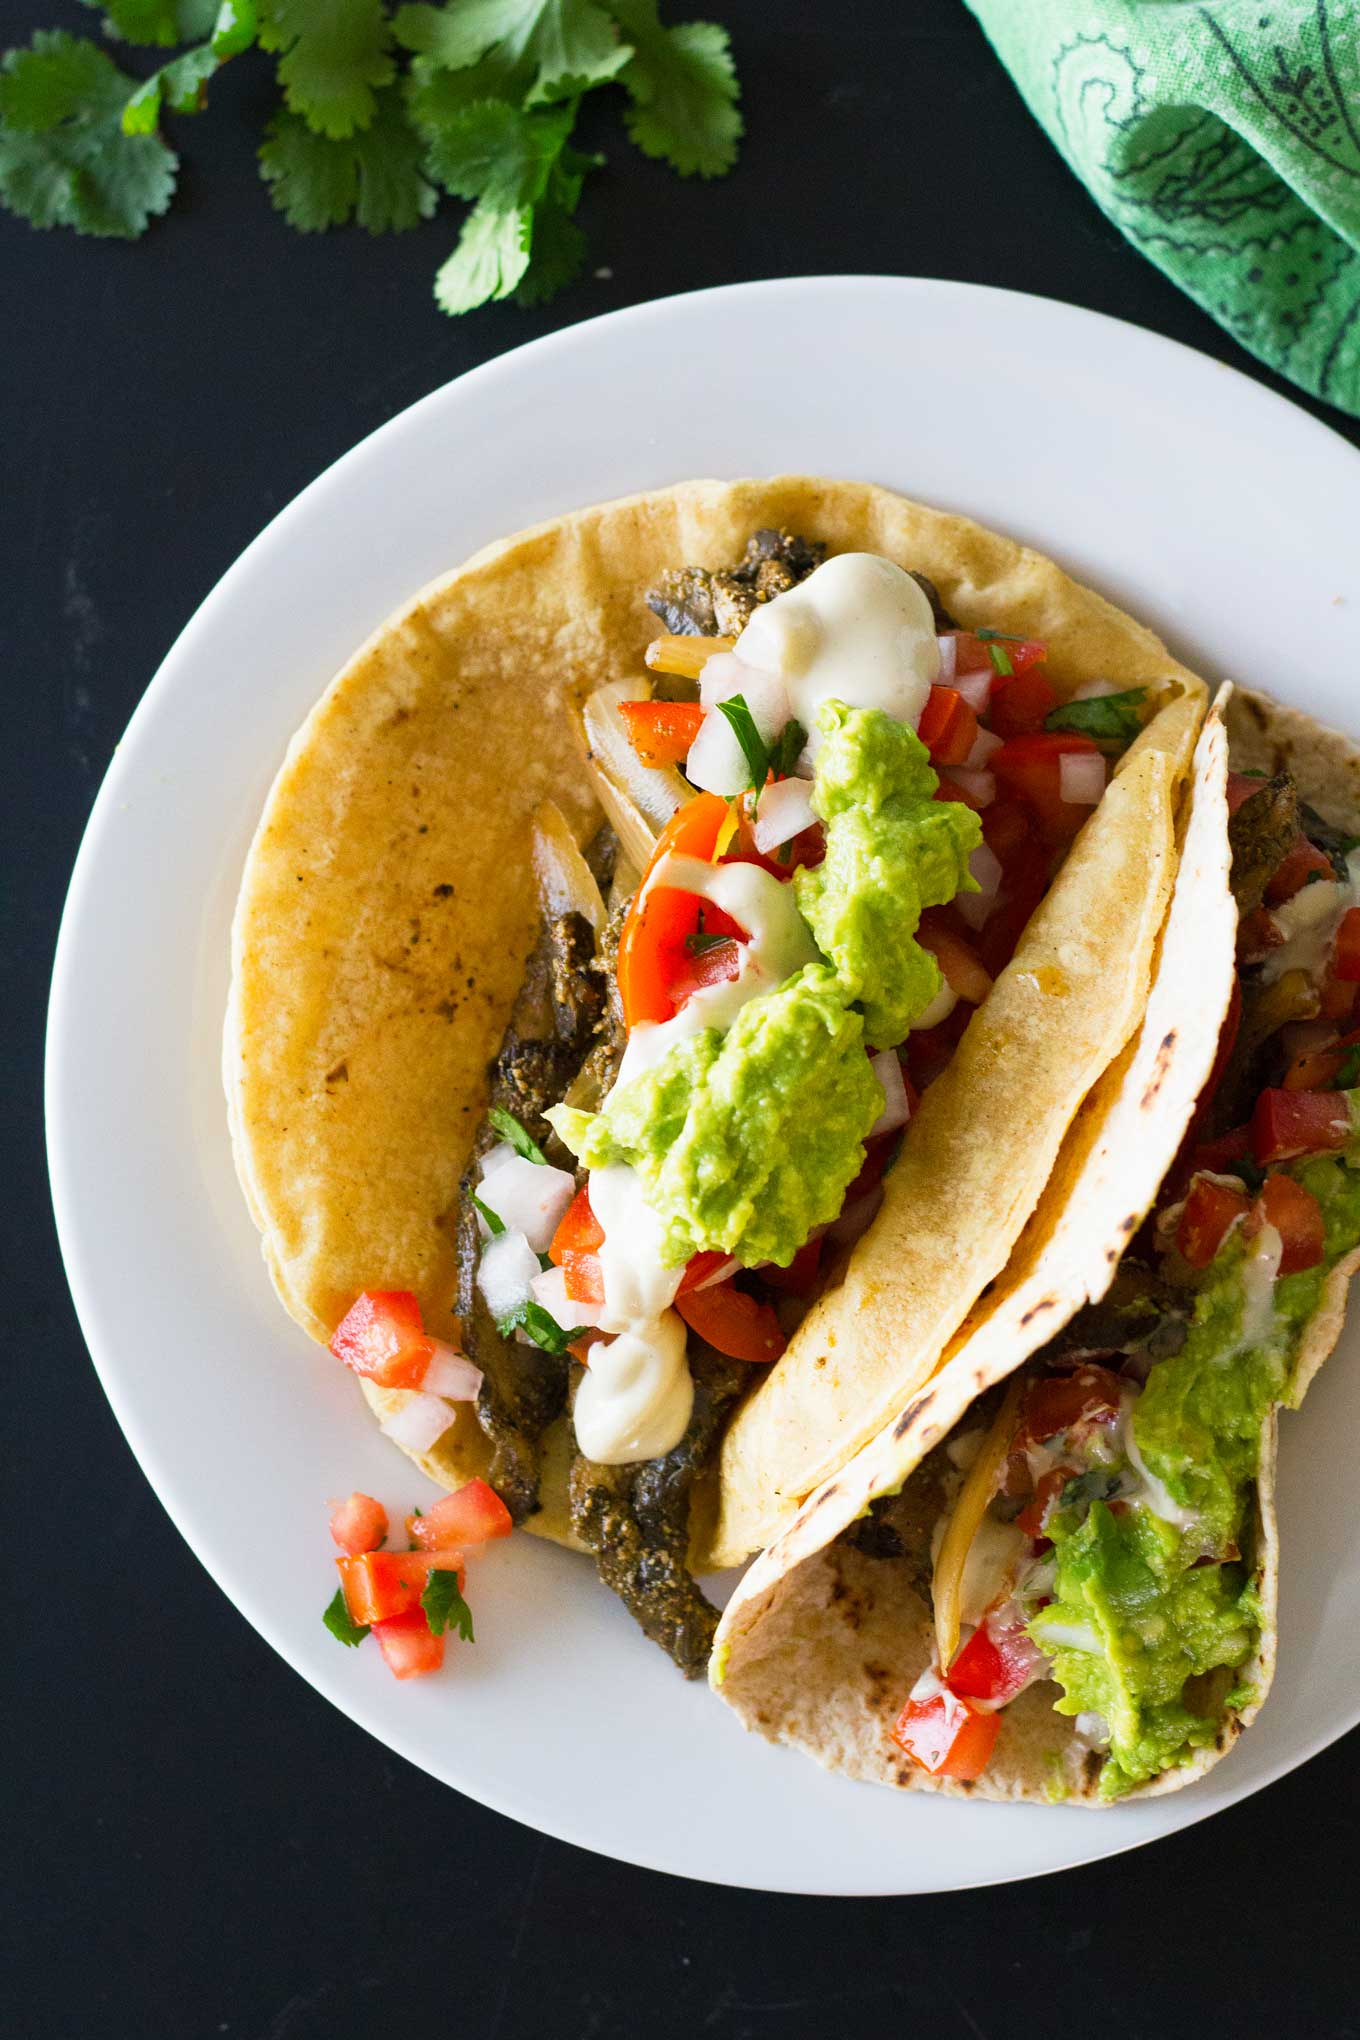 Ultimate Vegan Fajitas | Assembled fajitas on a plate topped with guacamole, pico de gallo, savory cashew cream | http://www.eatwithinyourmeans.com/